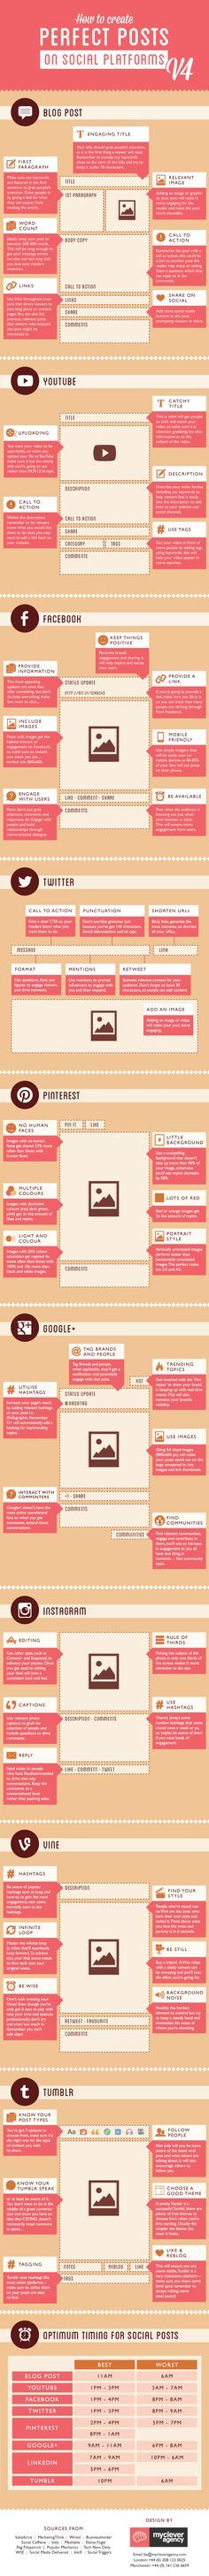 How To Create Perfect Posts for Blog, YouTube, Tumblr, Vine, GooglePlus, Facebook and Twitter: Infographic